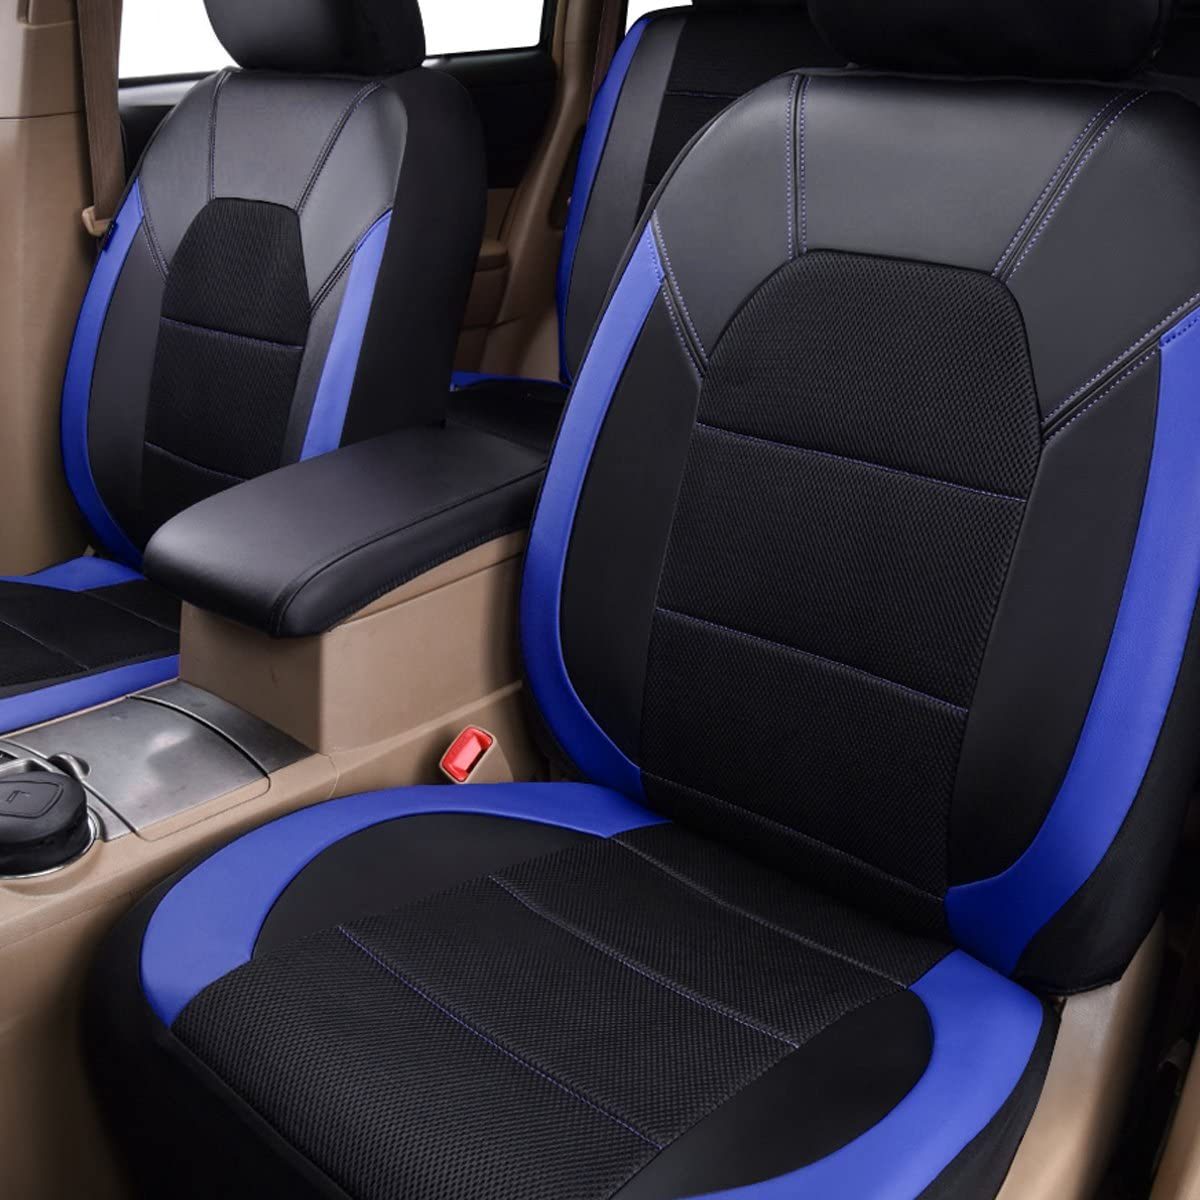 CAR PASS Leather and Mesh Universal Fit Car Seat Covers 11PC, Black and Blue Trunkcs,Suvs,Airbag Compatible,Inside Zipper Design and Opening Holes for Headrest for Sedans